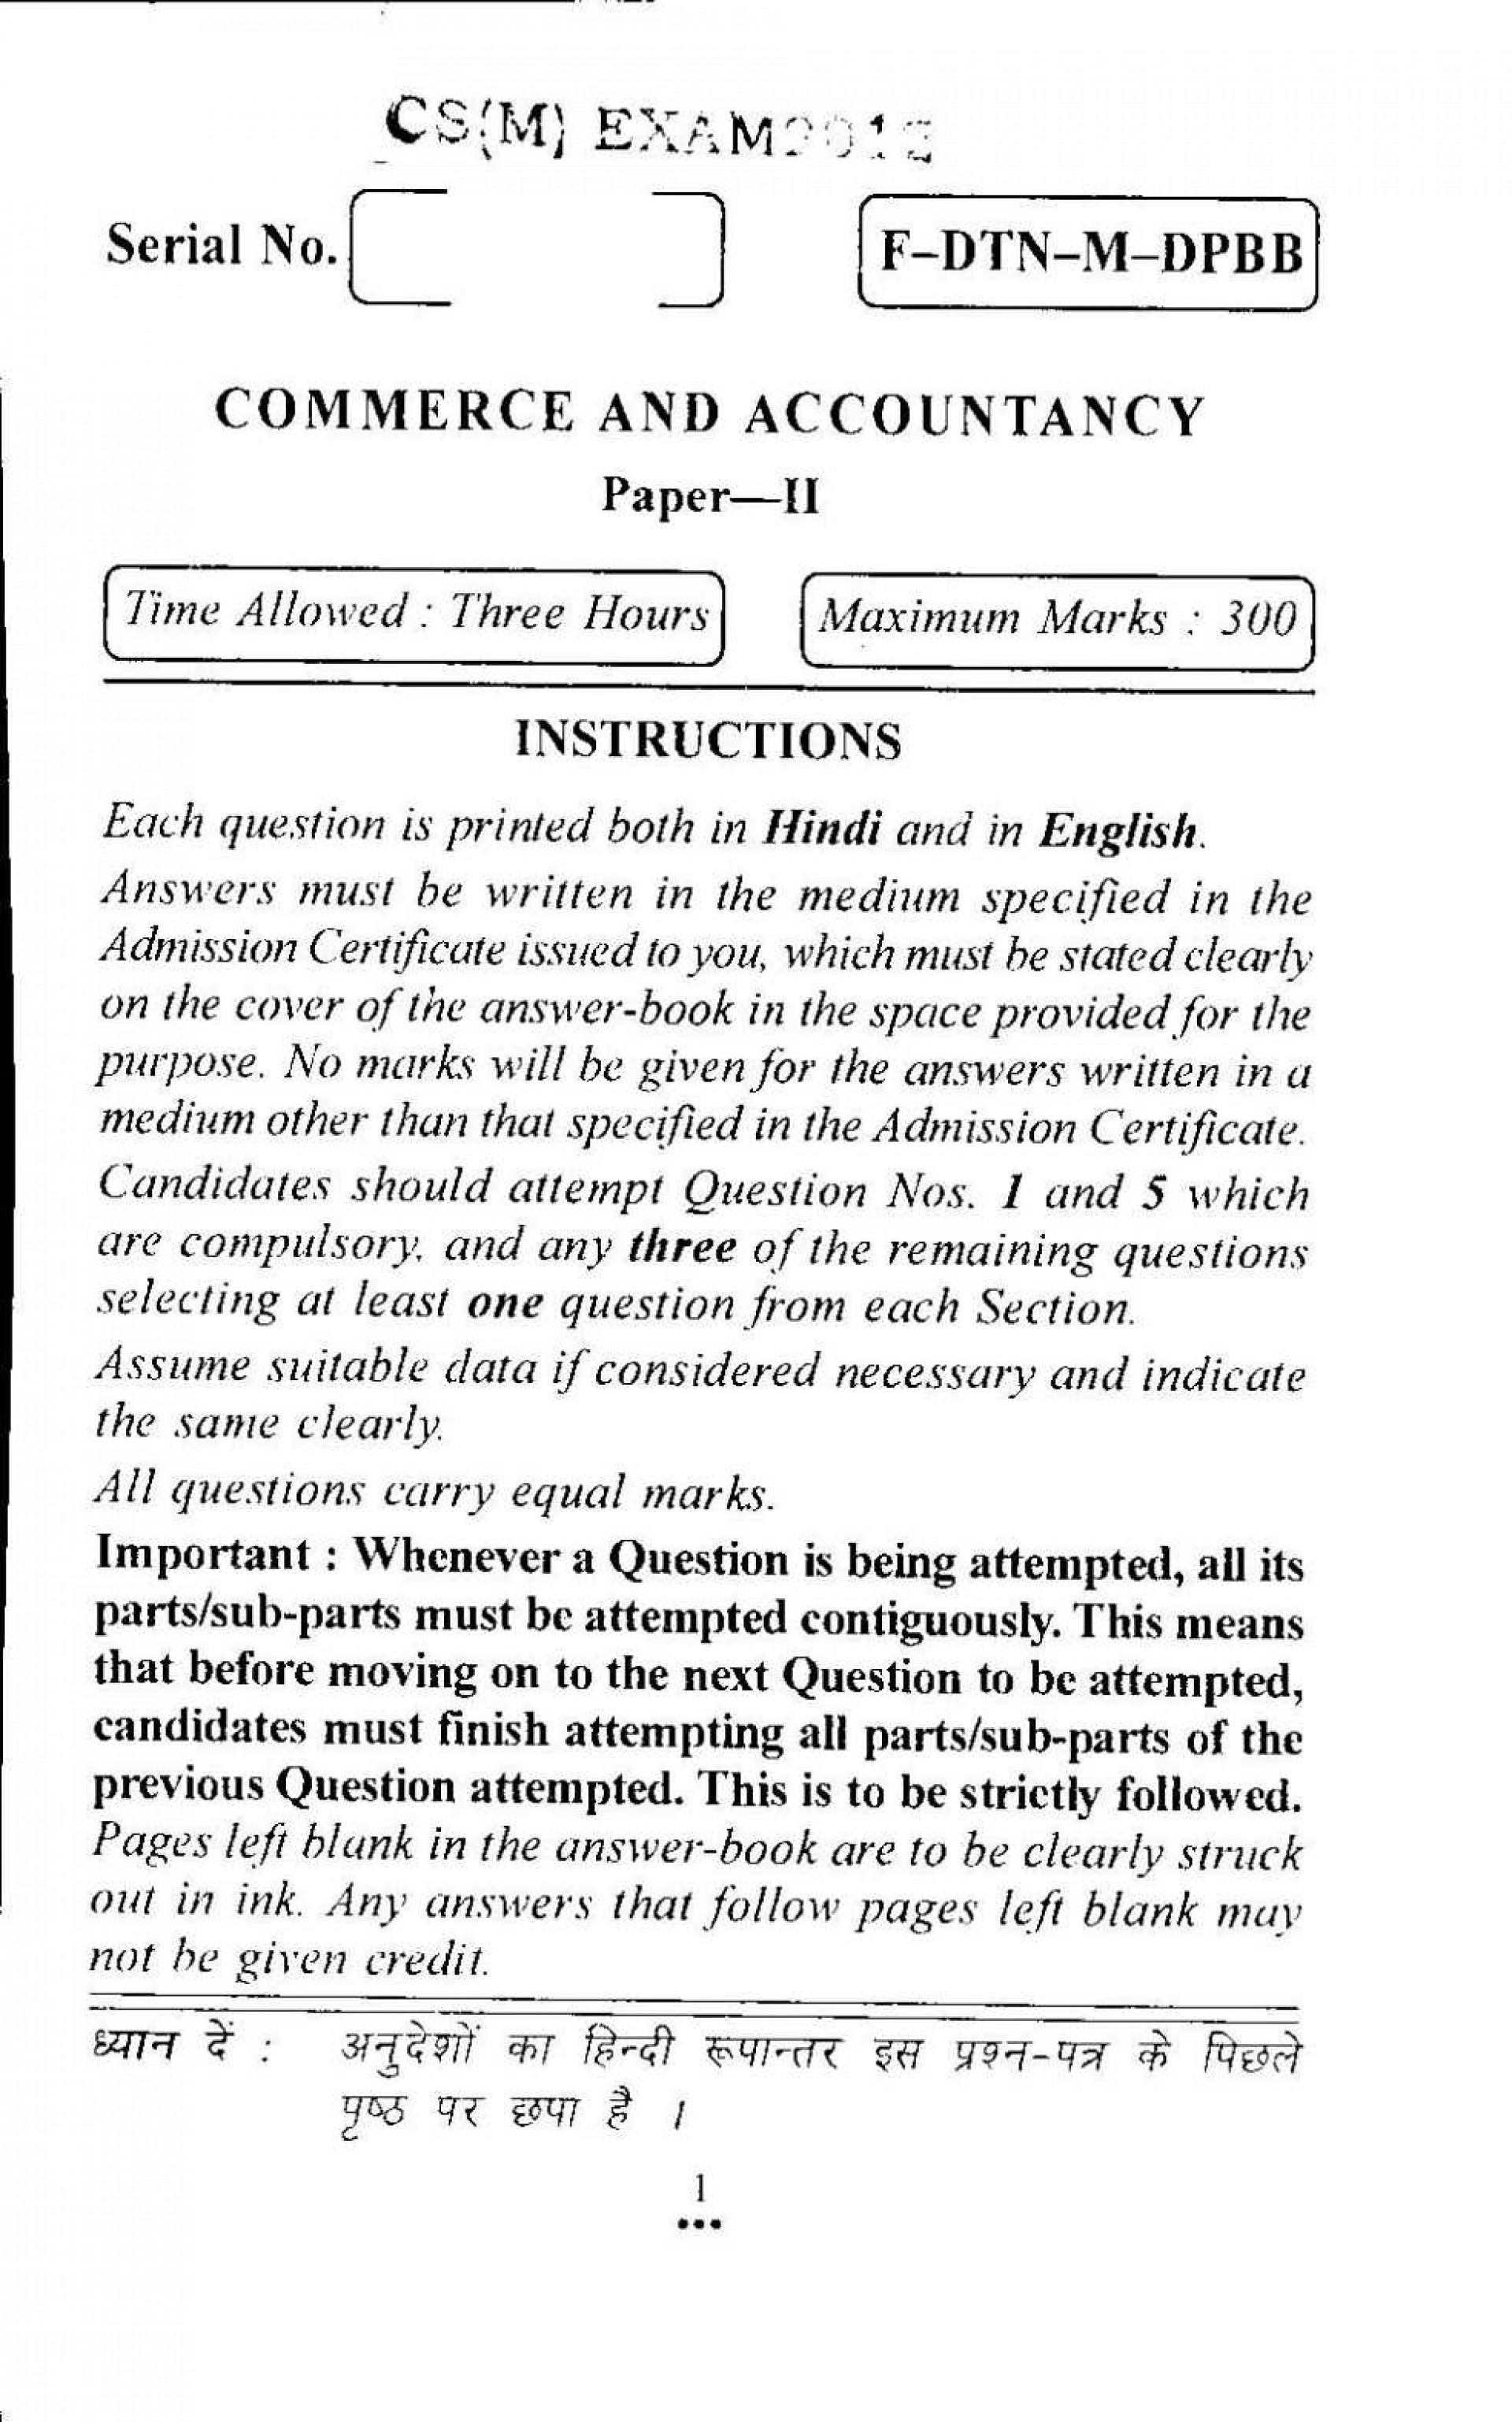 013 Essay Example Discrimination Civil Services Examination Commerce And Accountancy Paper Ii Previous Years Que Excellent Titles Age Topics 1920